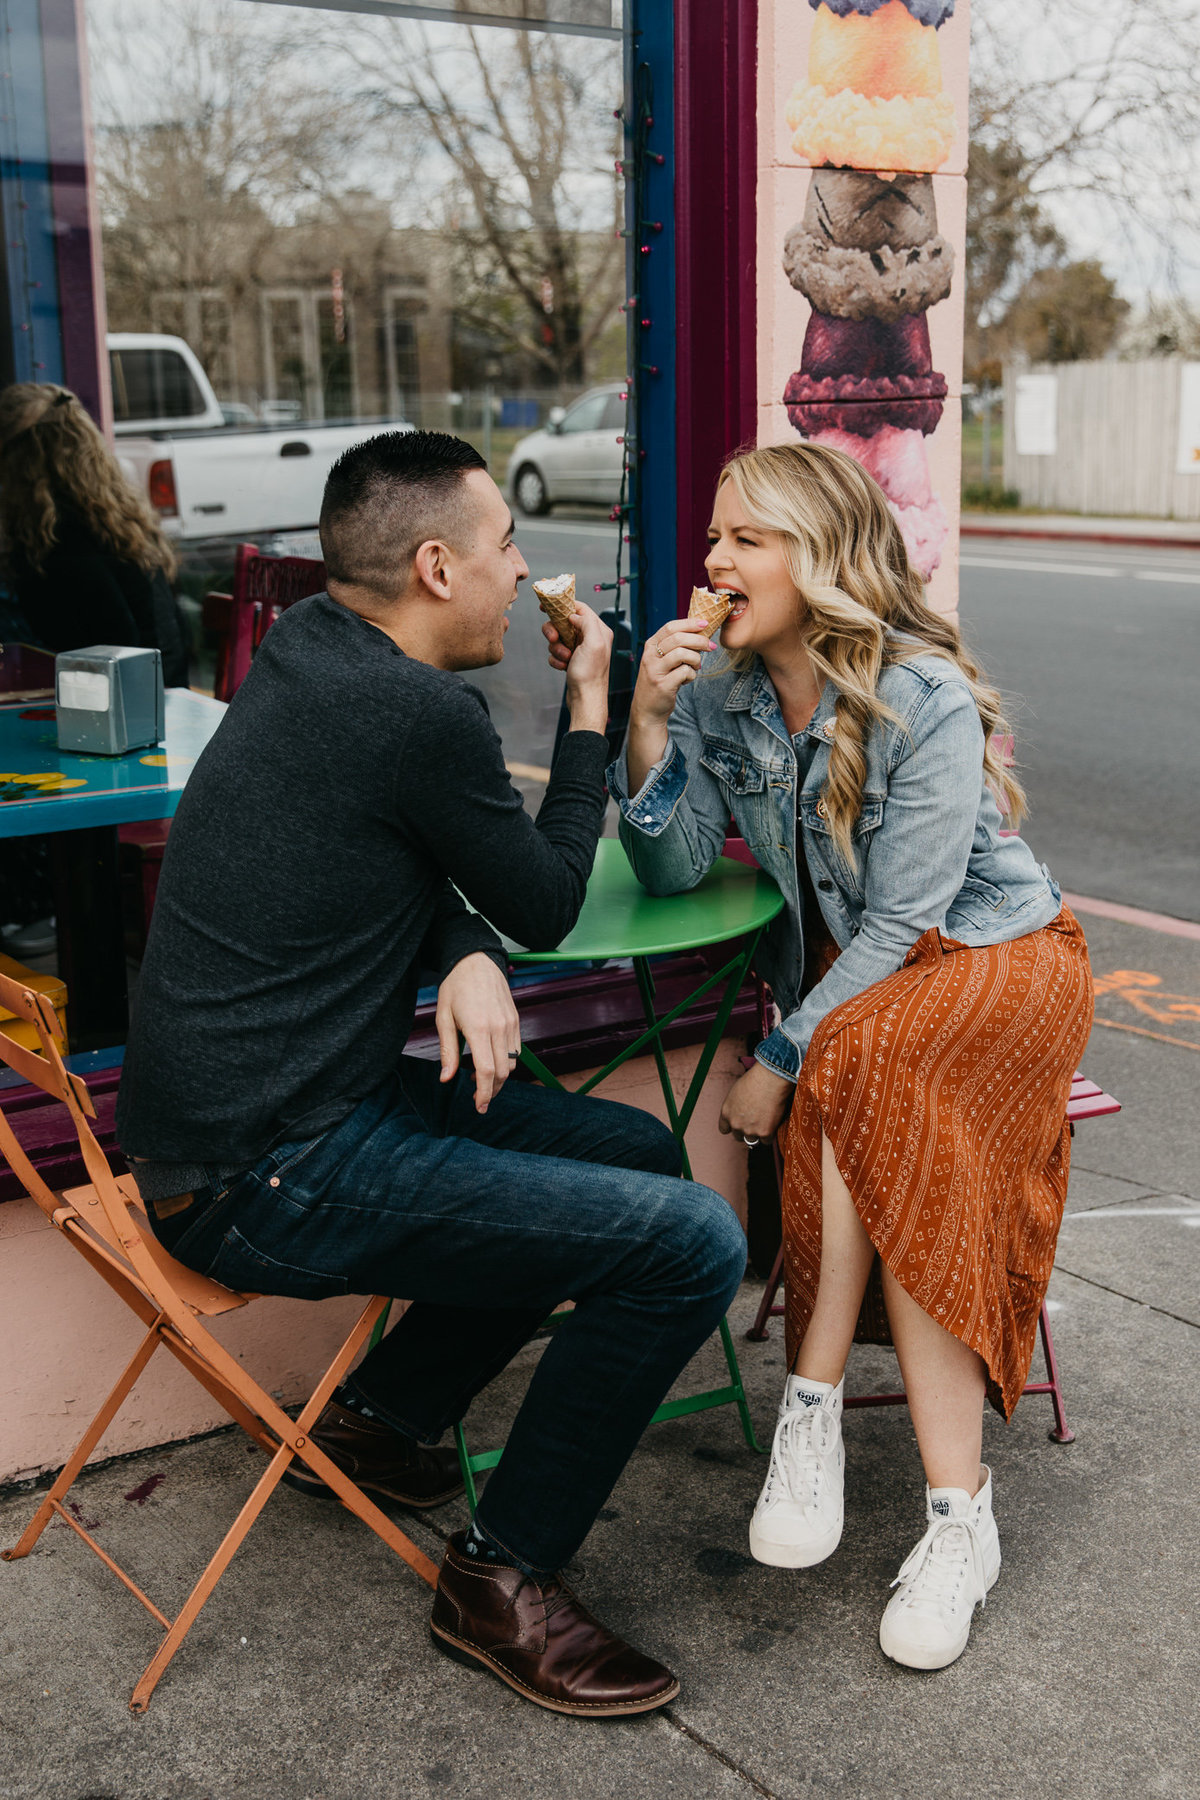 melissa+chris-brandshoot-march2020-1